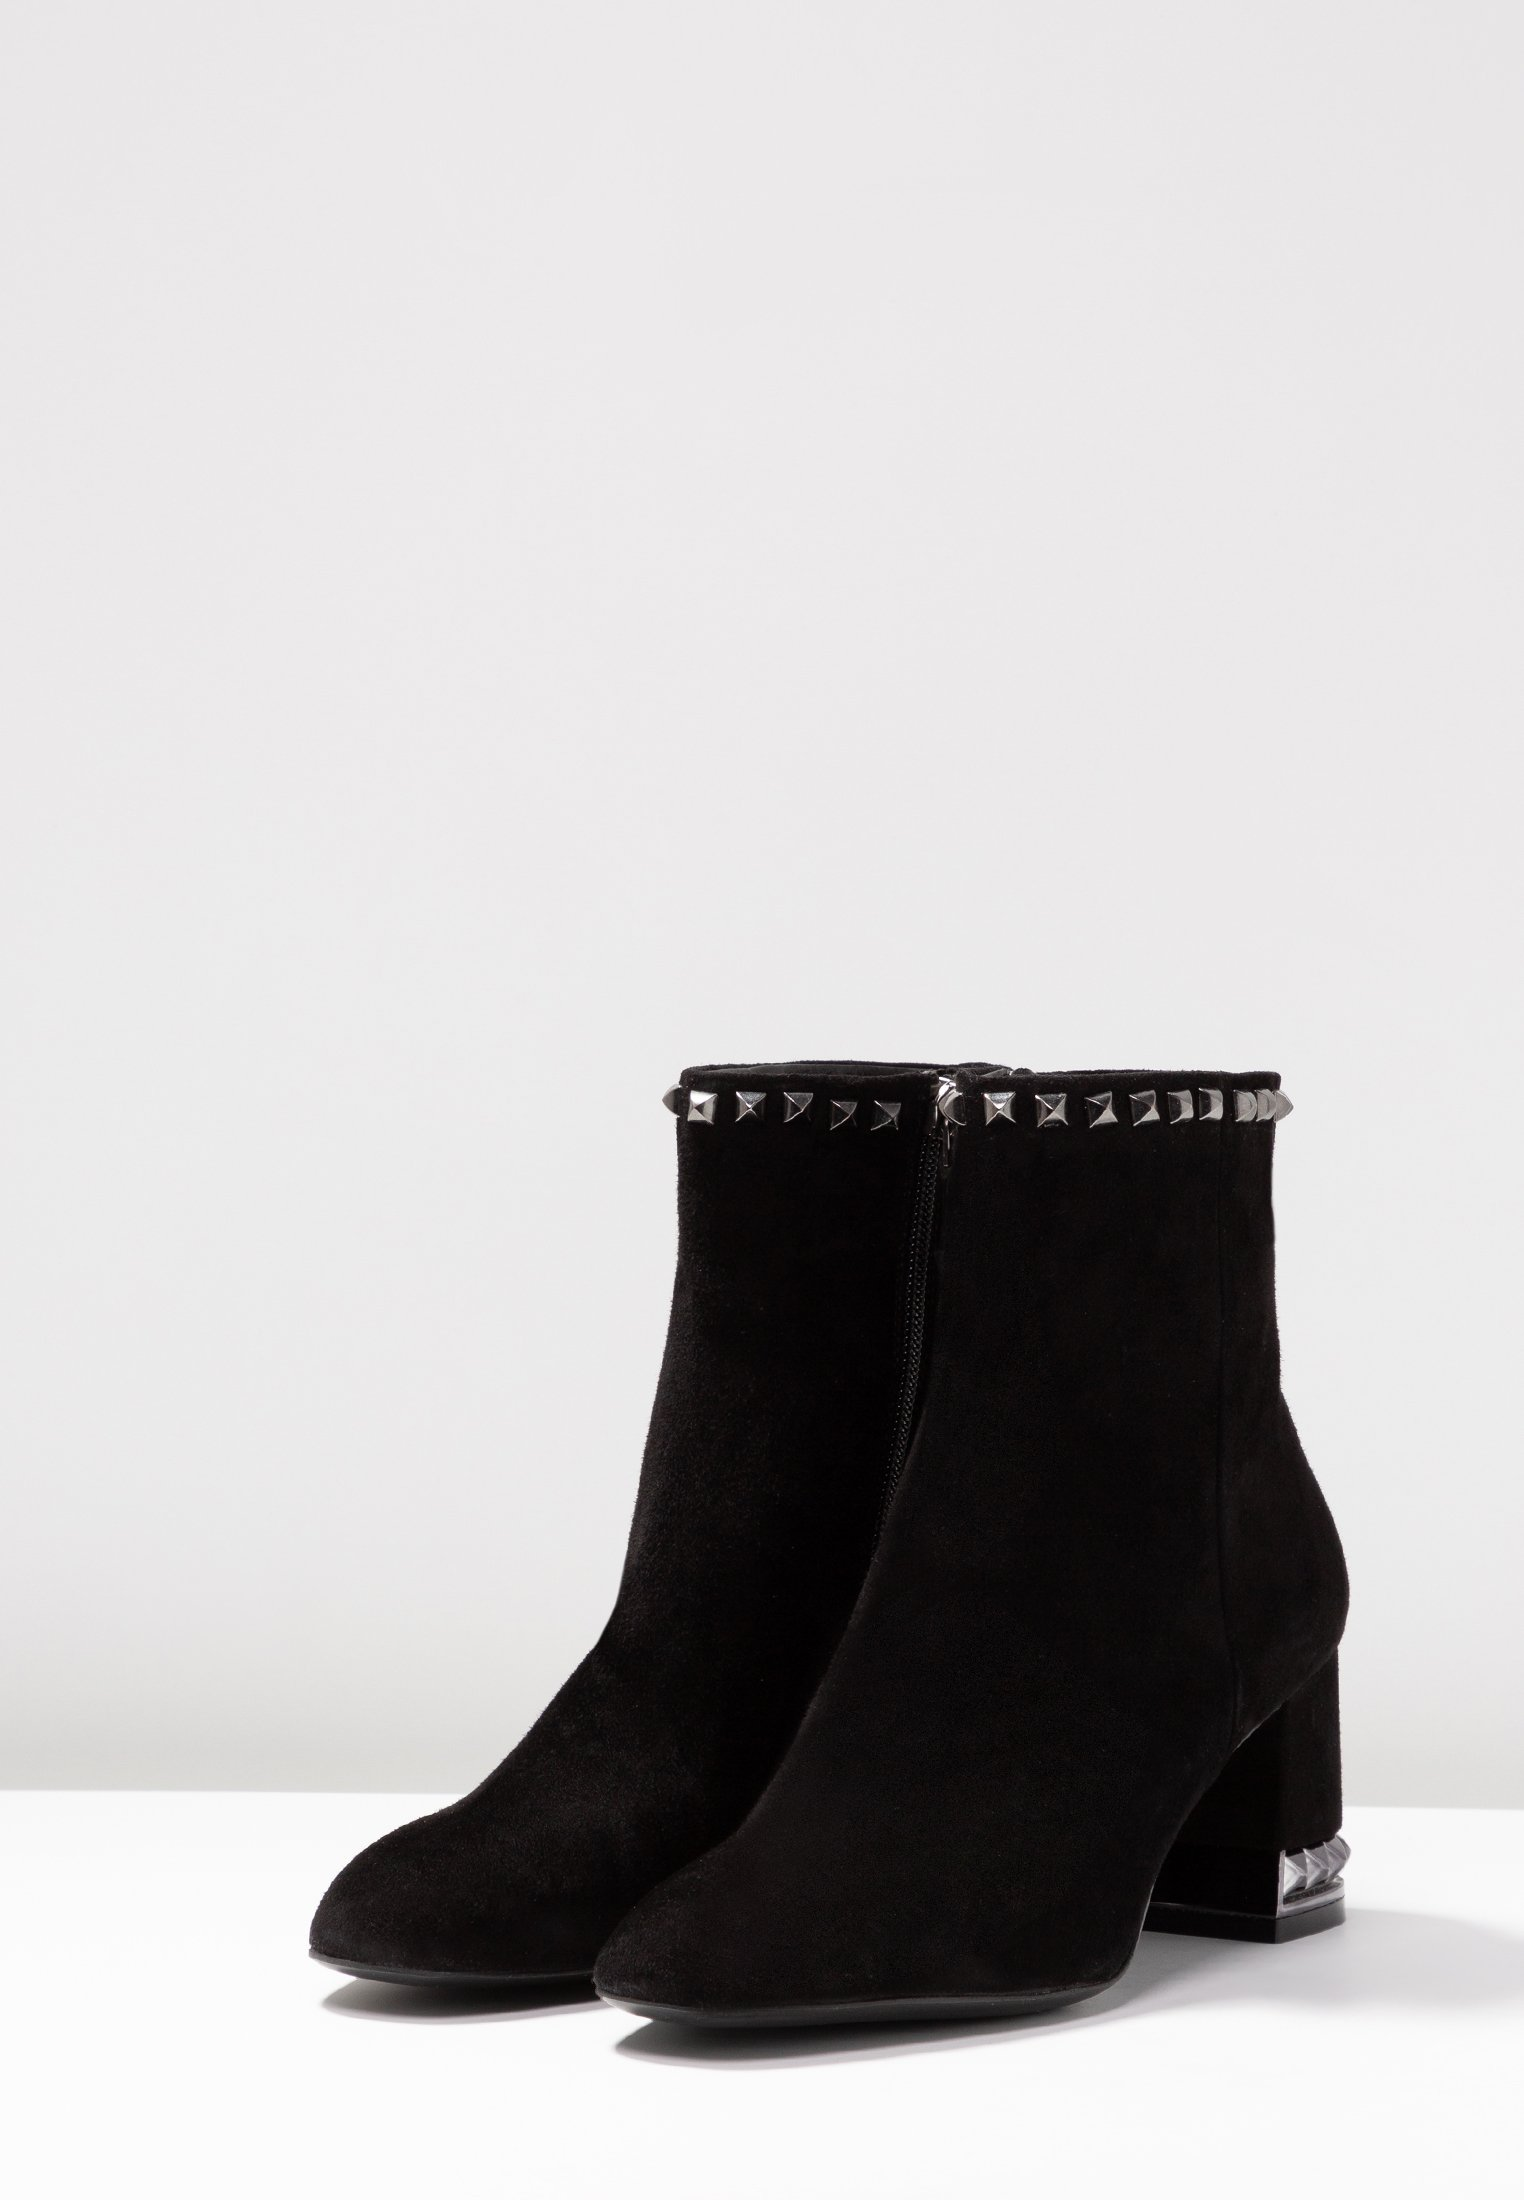 Bruno Premi Bottines nero